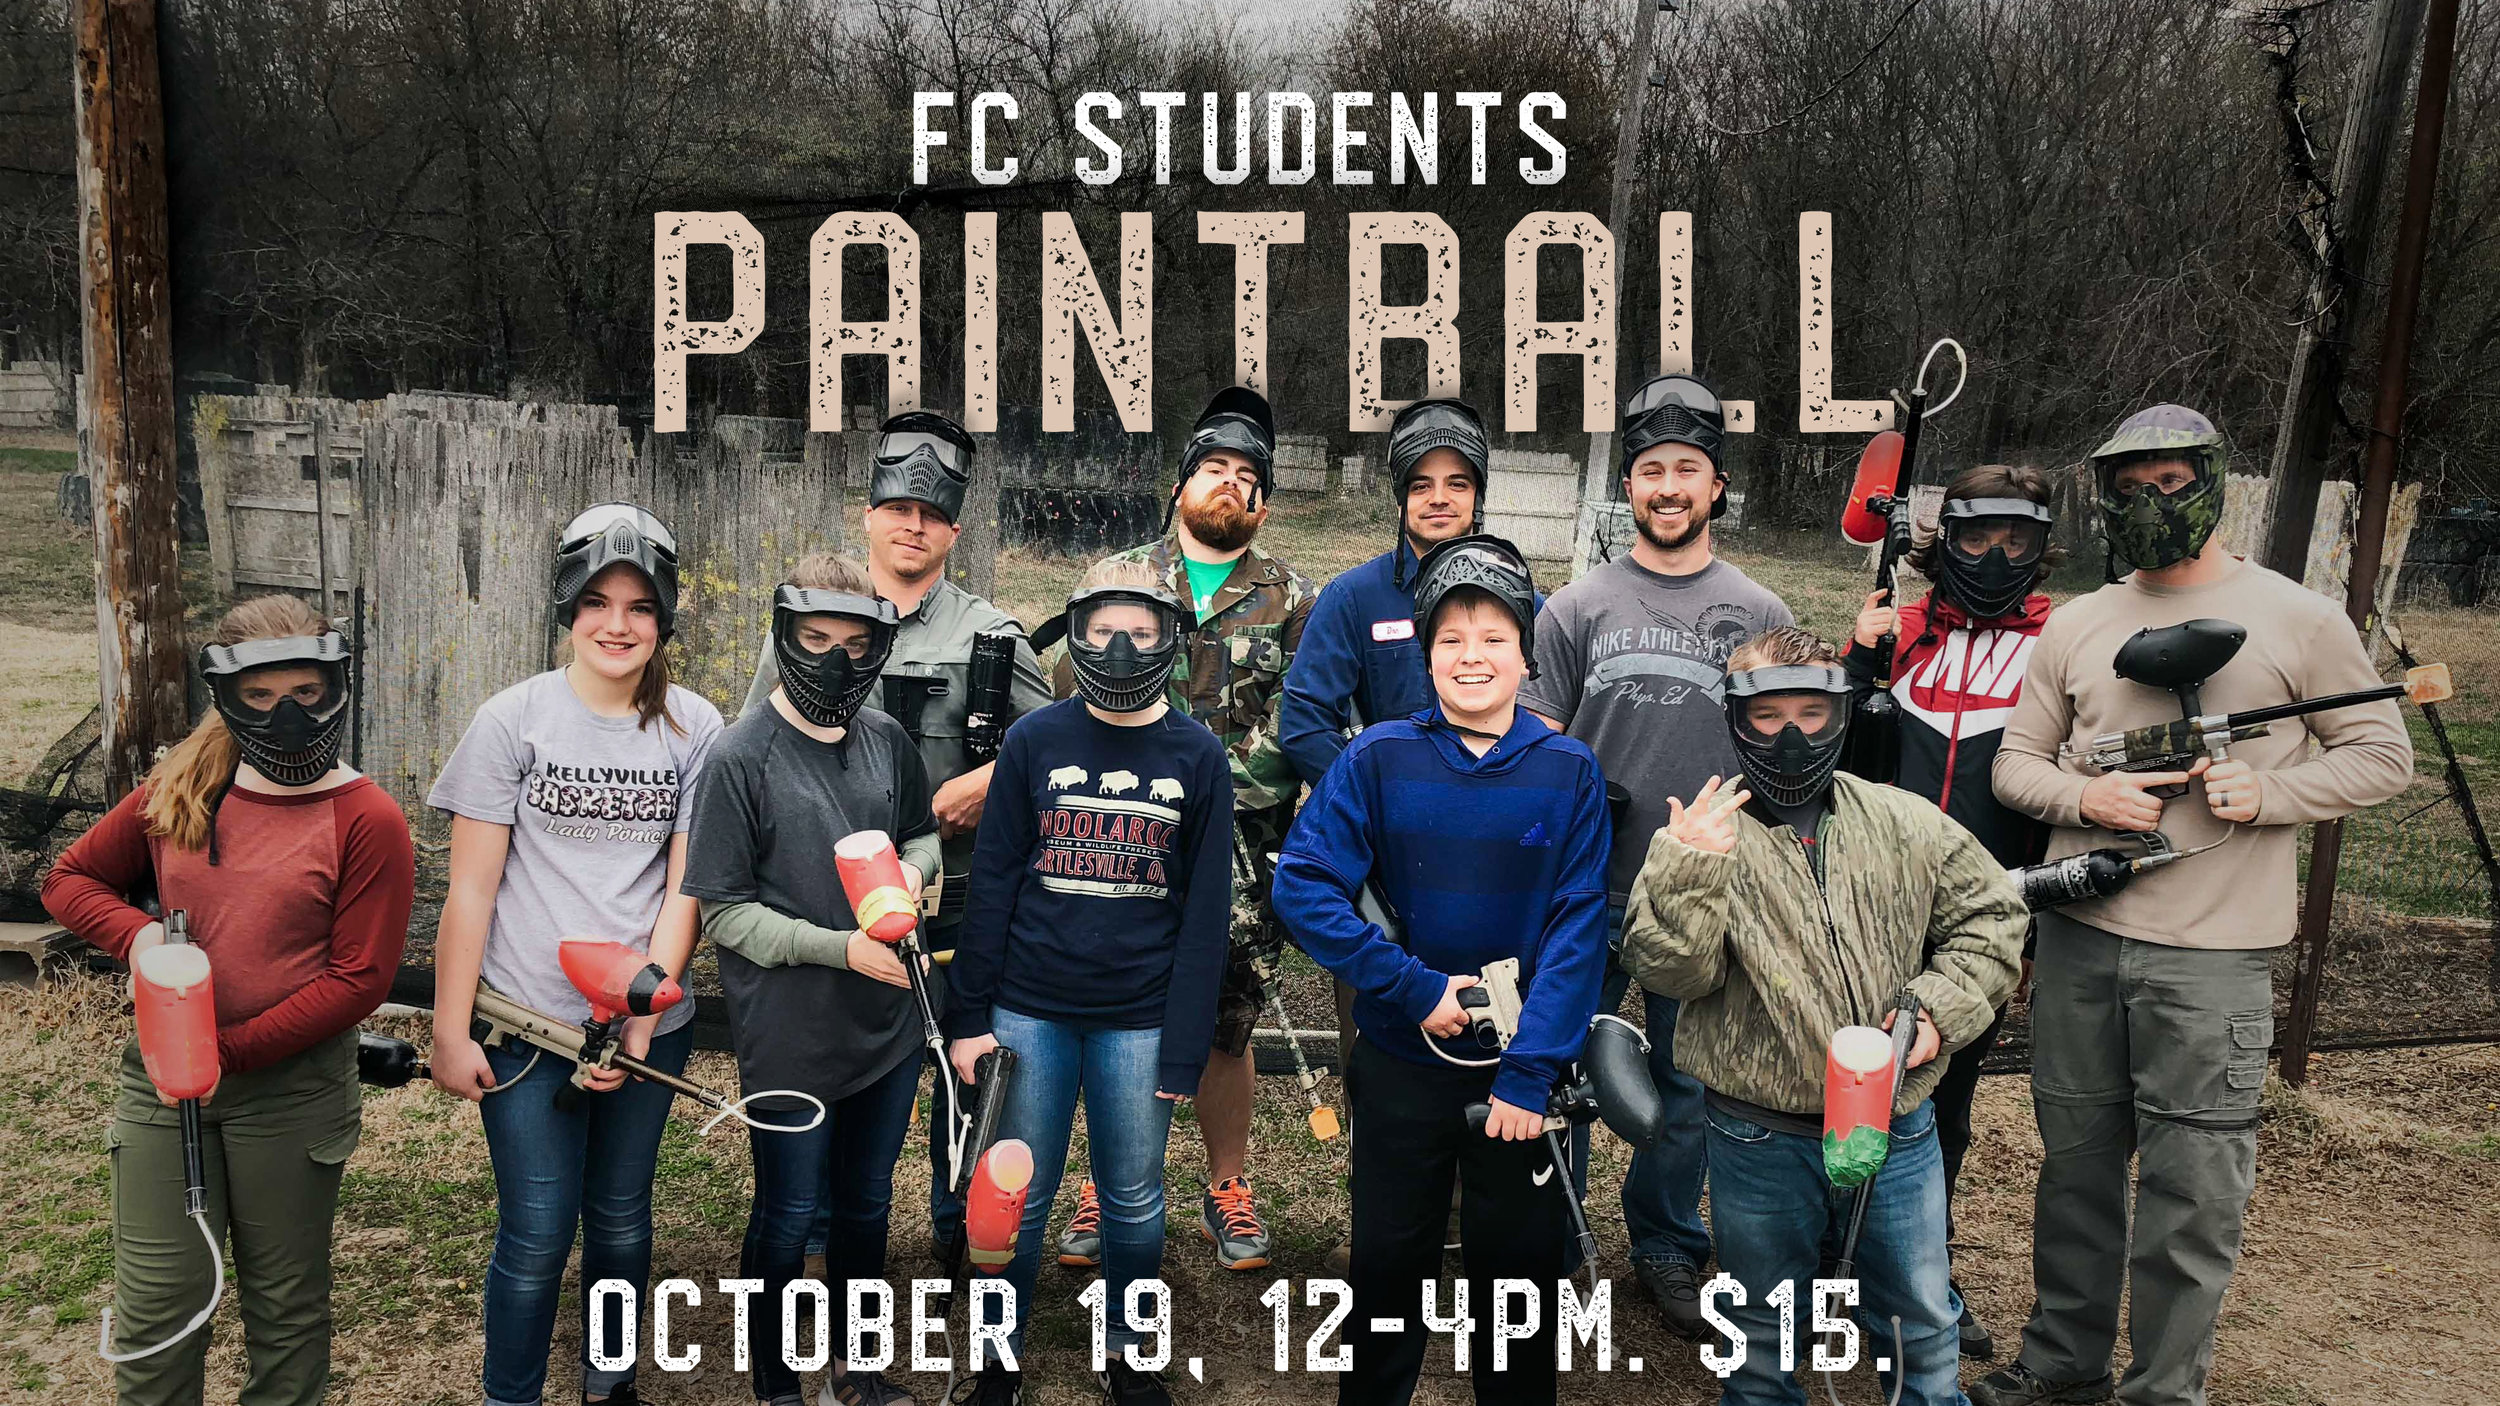 Foundations Church Students Paintball Event October 19